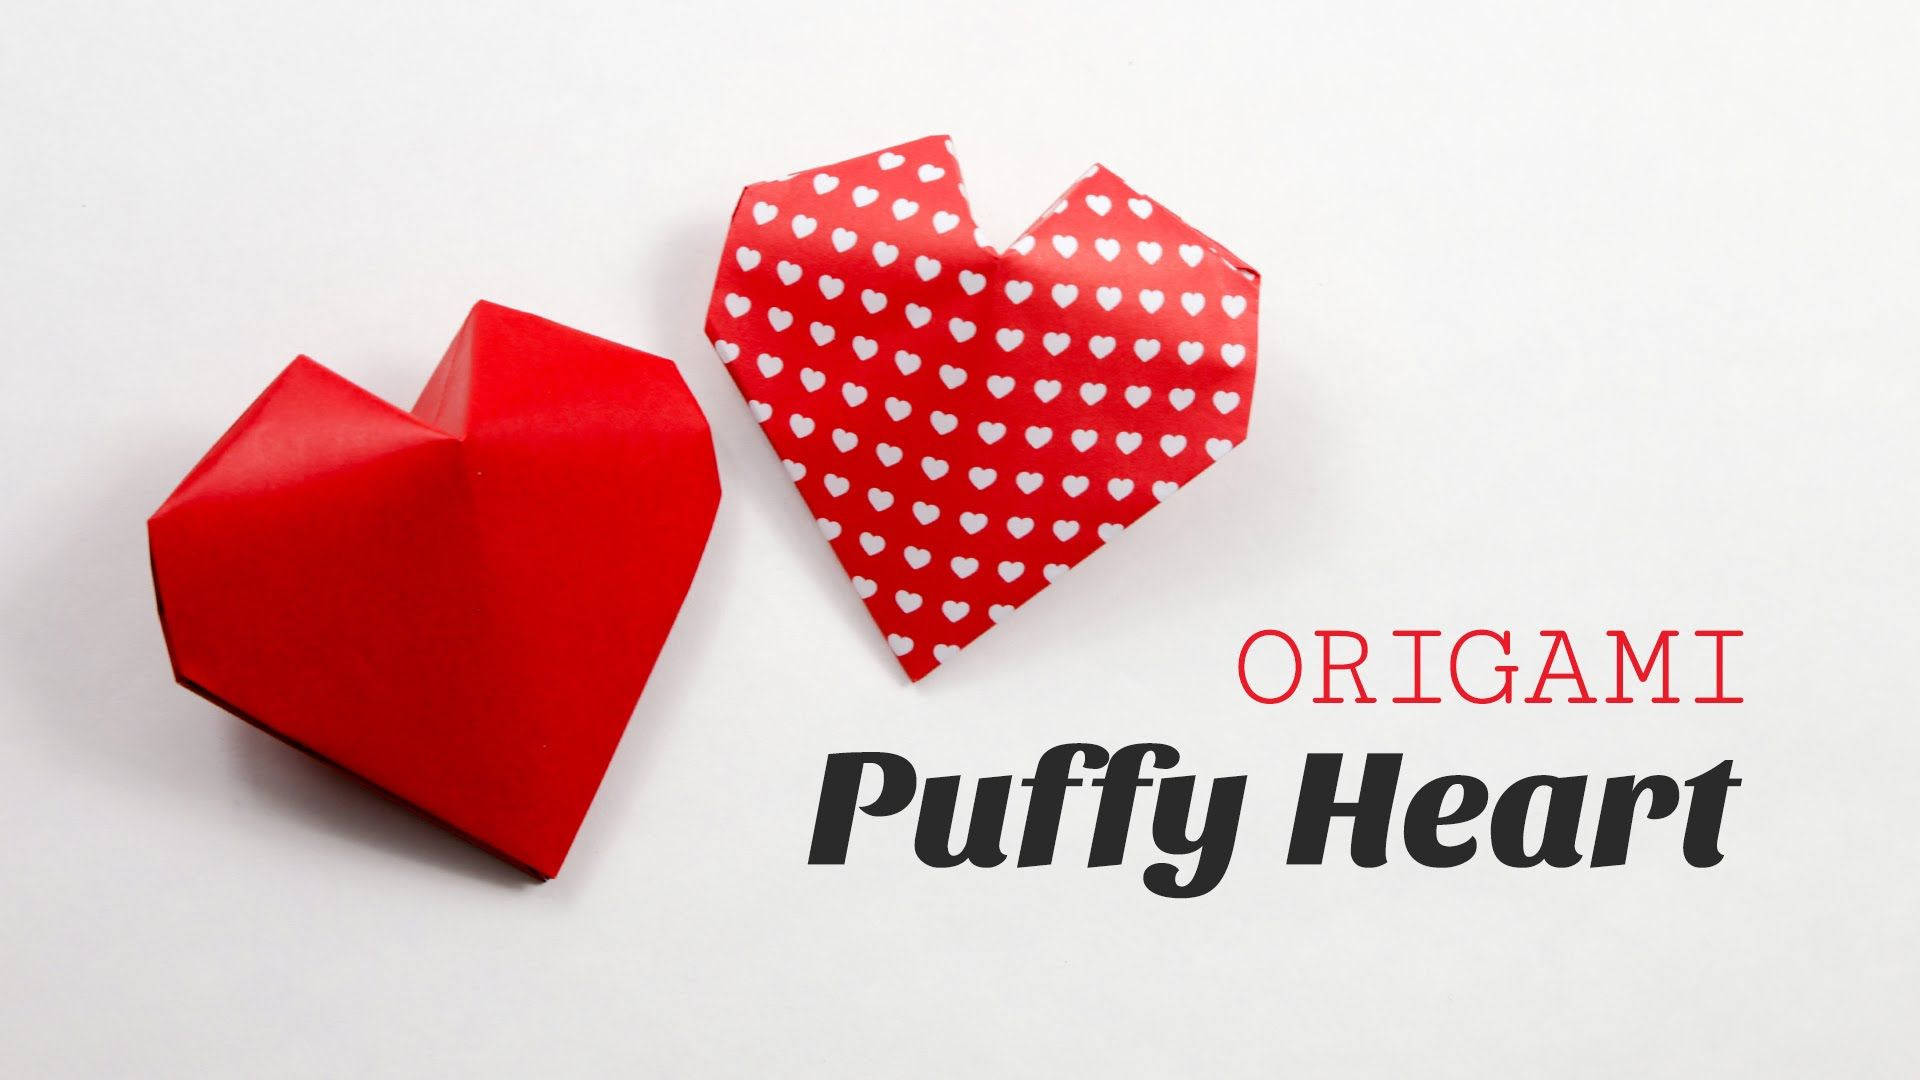 Origami Puffy Heart Instructions 3d Paper Heart Diy Paper Kawaii Origami Heart Instructions Paper Hearts Origami 3d Origami Heart